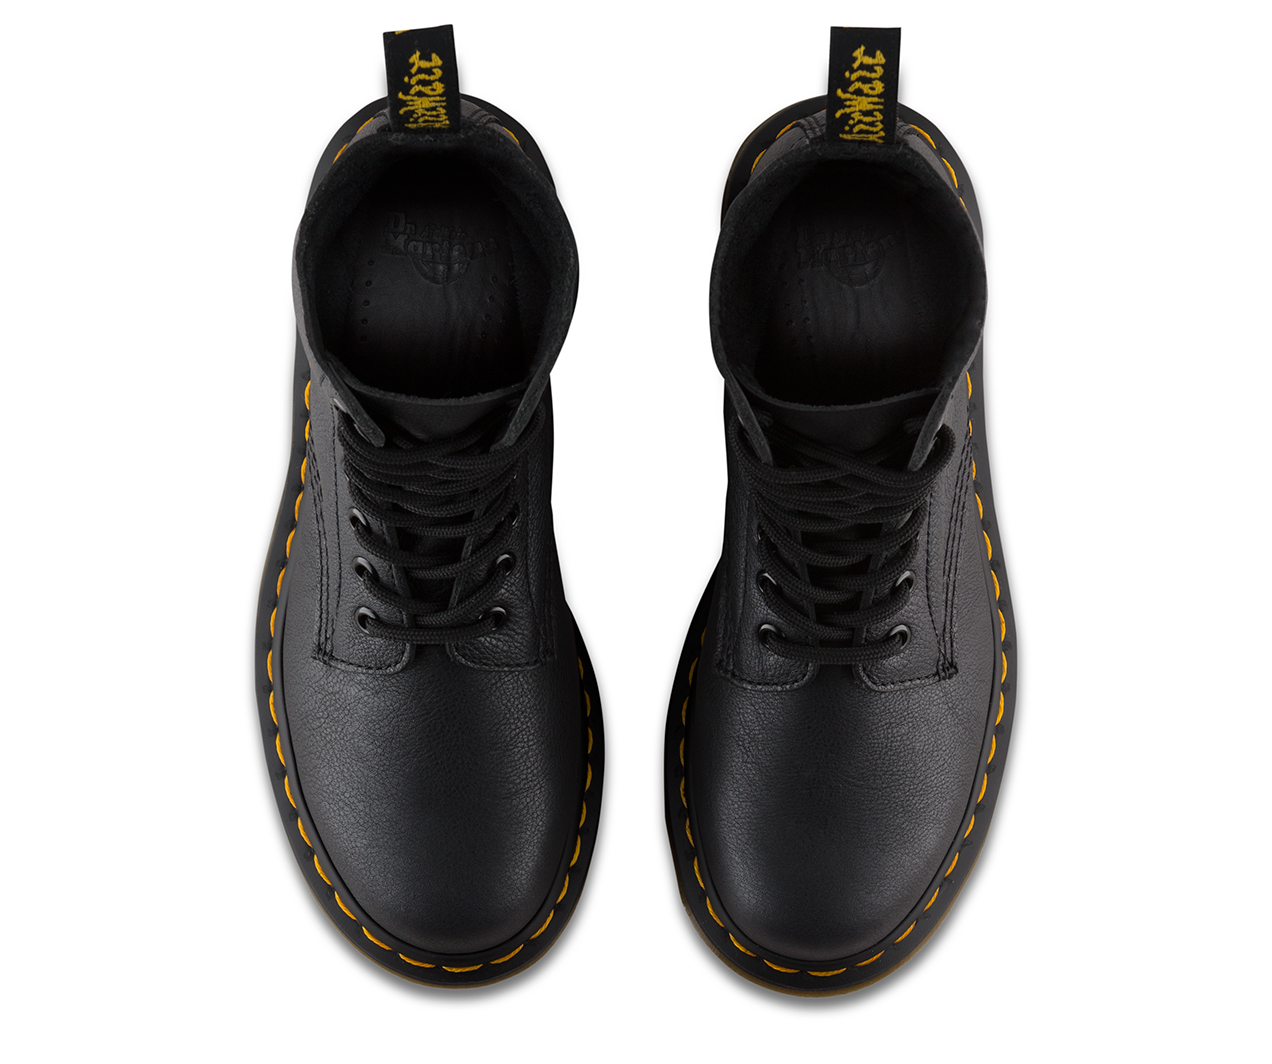 1460 Pascal Virginia Womens Dr Martens Official Site Lbw Korean Coarse Leather Strap Wedges Shoes Pink